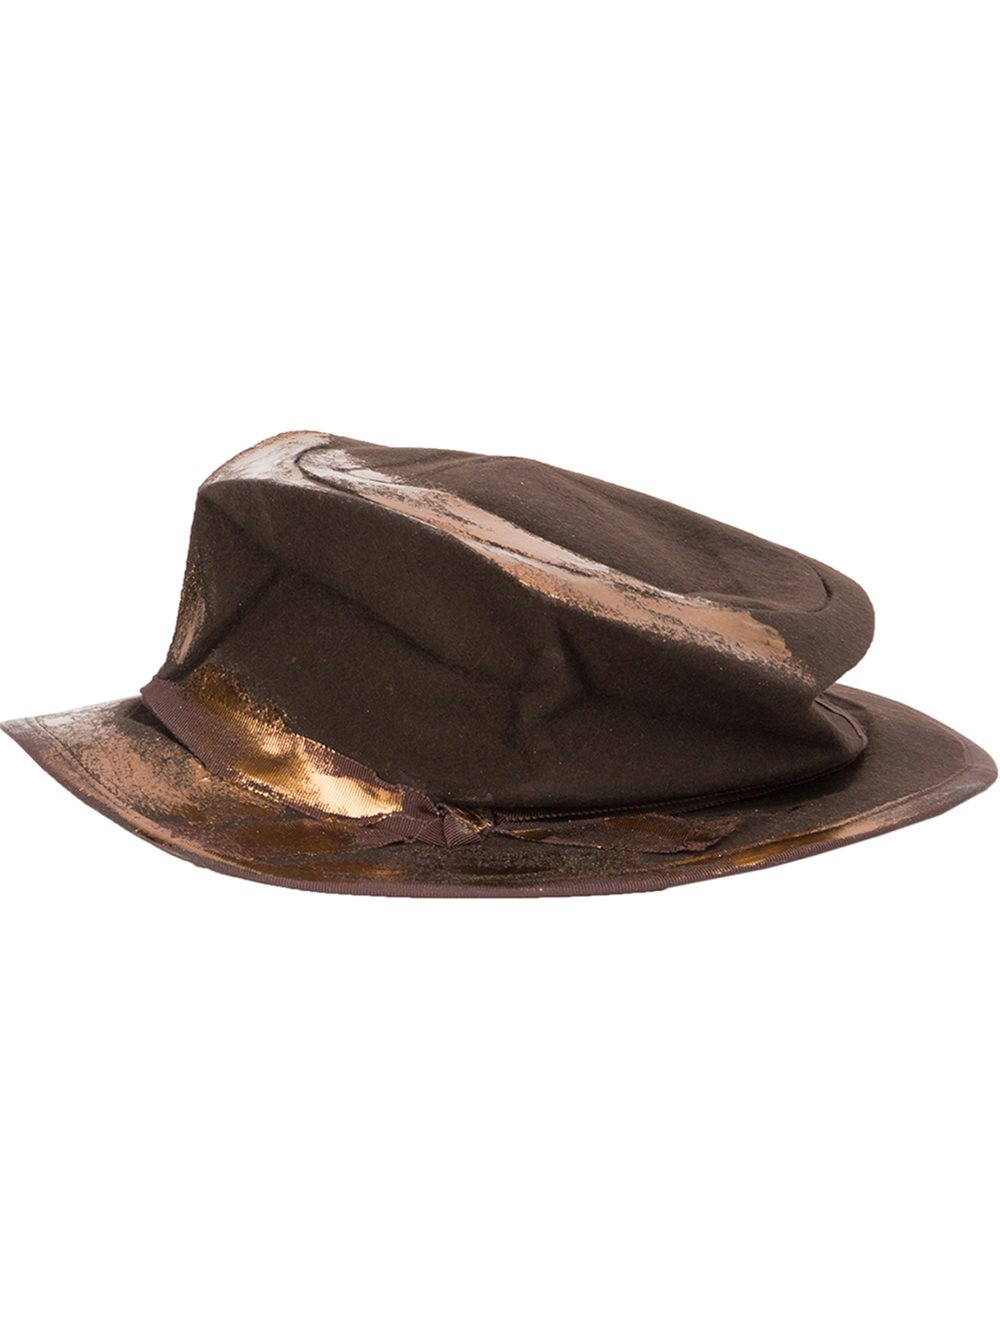 166a61744a2 CA4LA Worn Effect Classic Hat in Brown for Men - Lyst